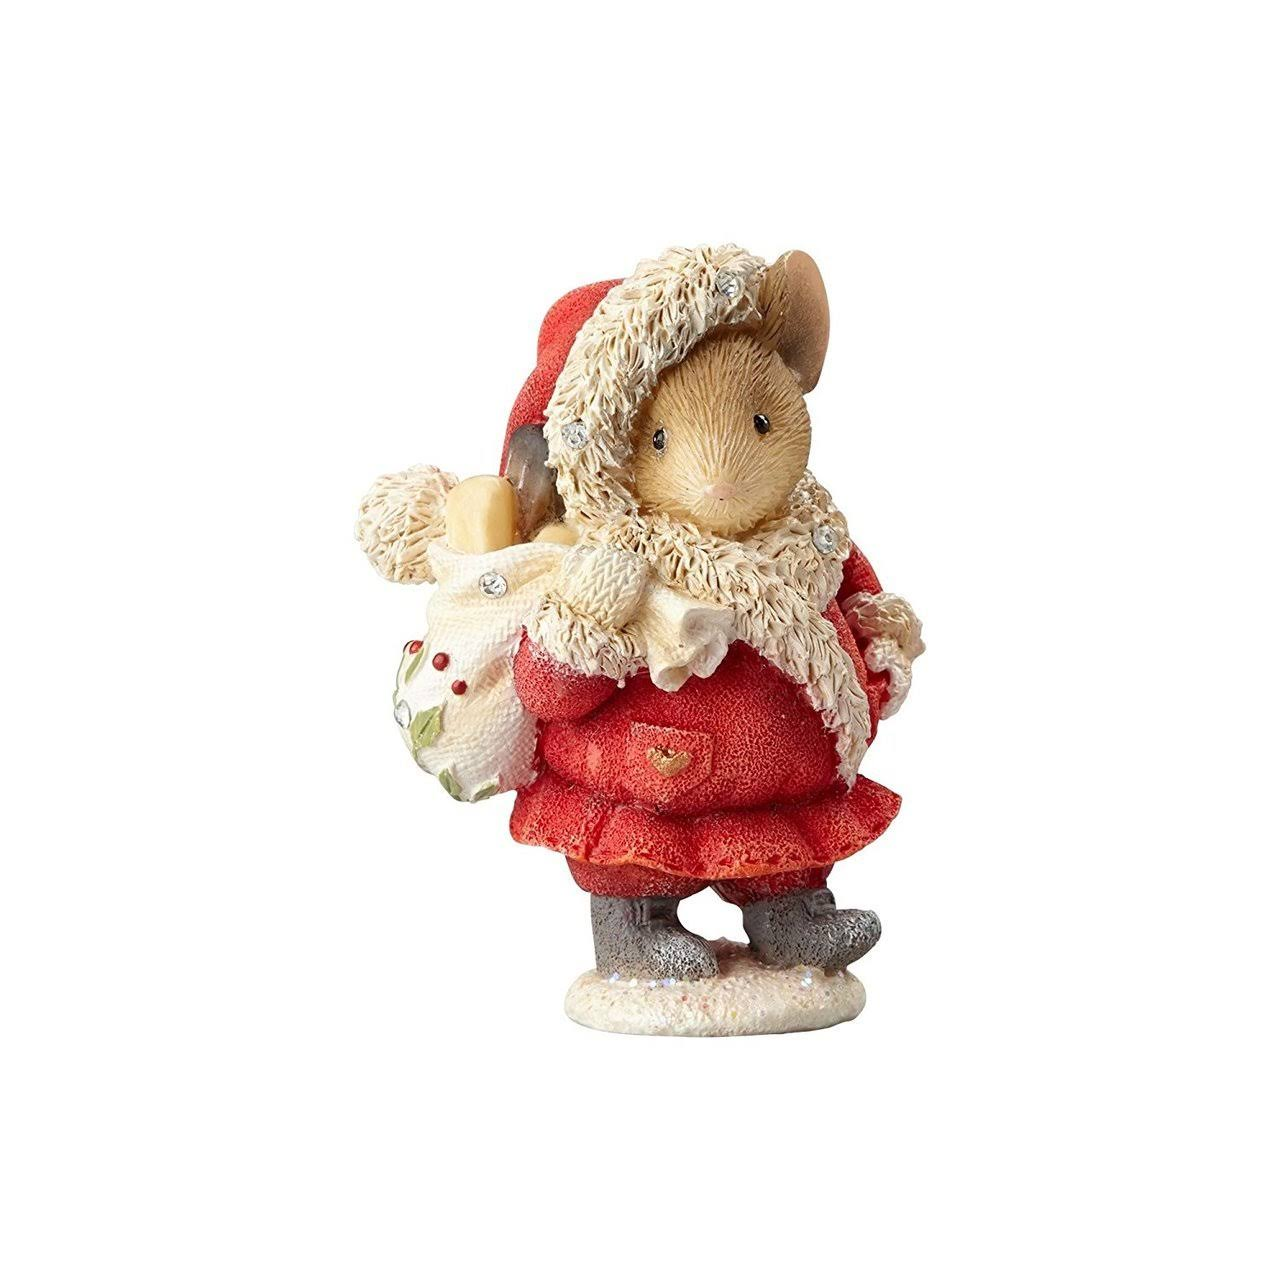 Enesco Heart of Christmas Believe Santa Mouse Figurine